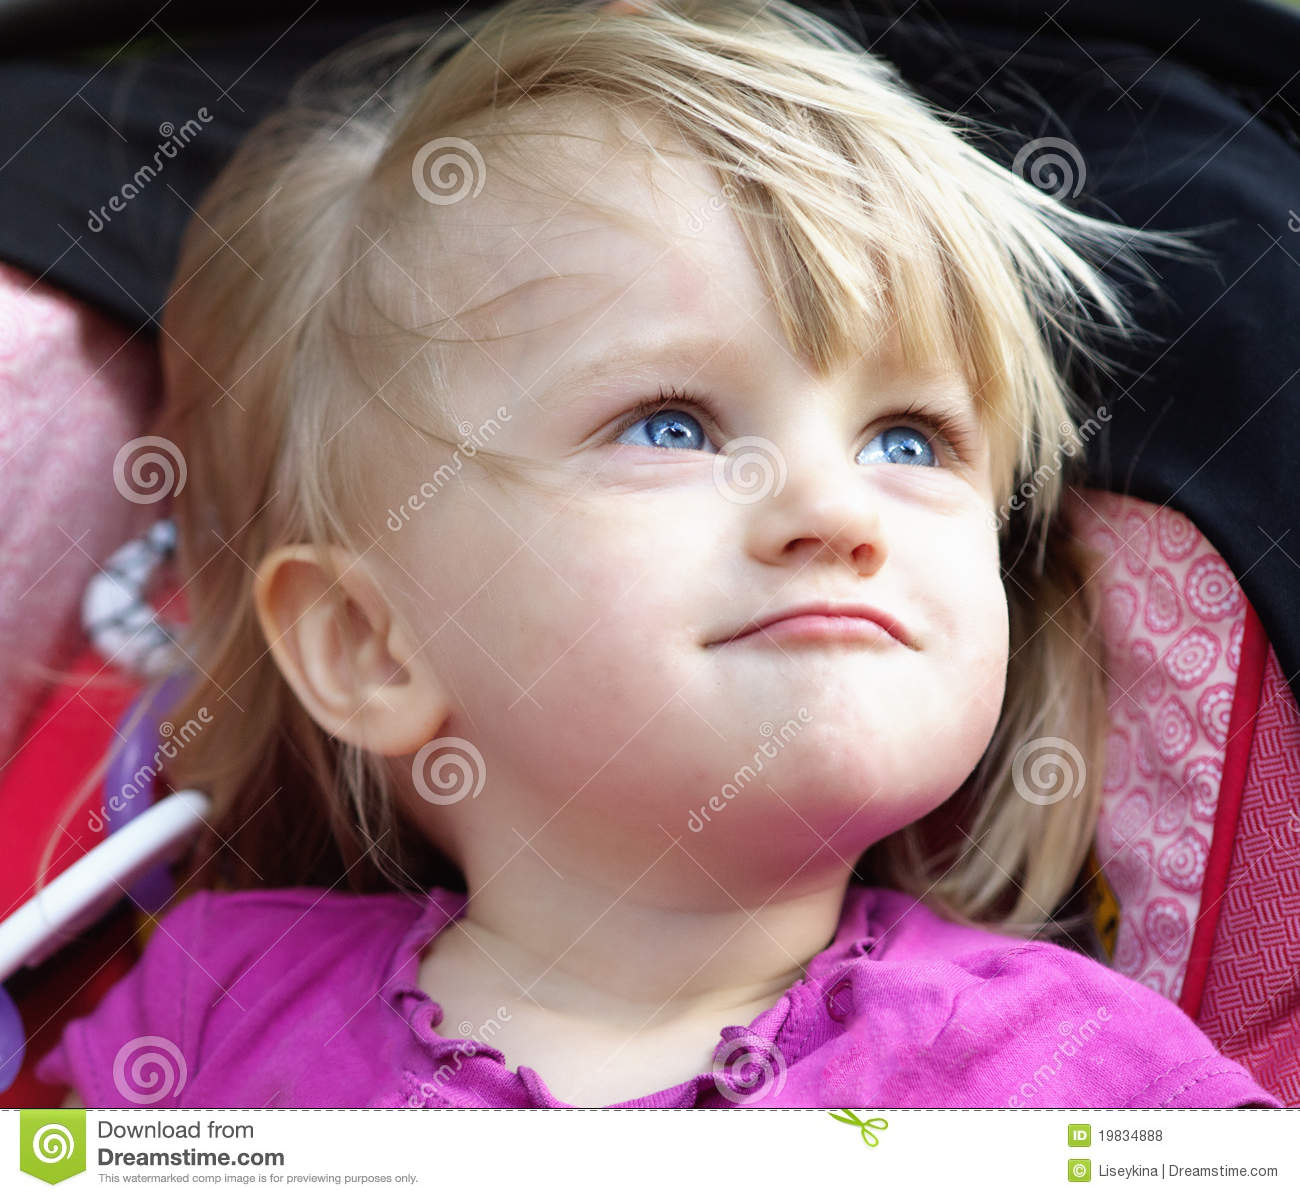 Funny Baby Girl Royalty Free Stock Photos - Image: 19834888